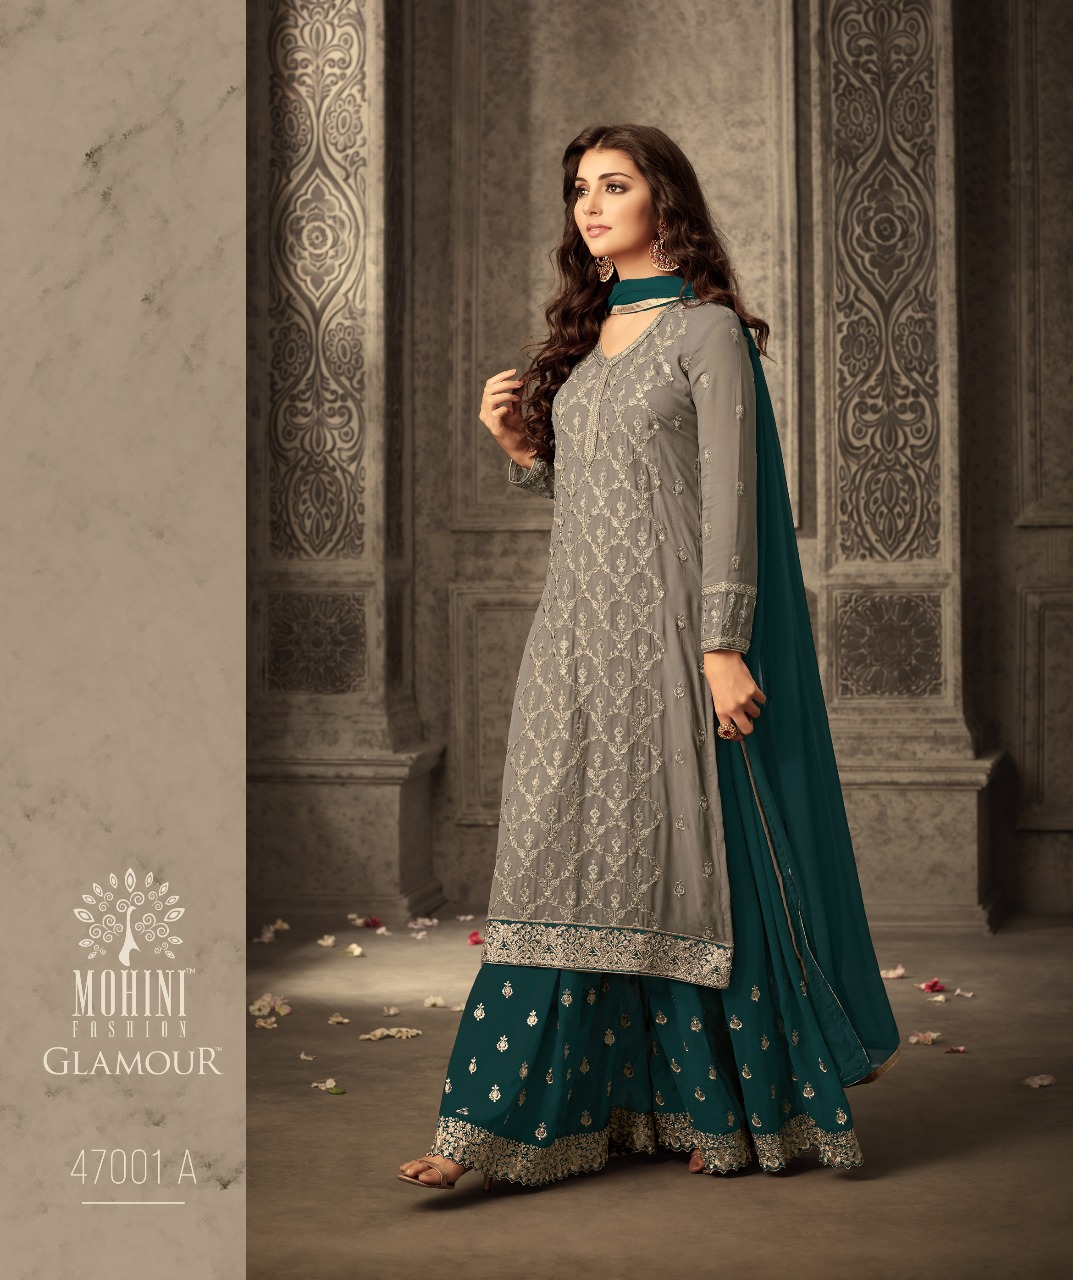 a063884dd2 GLAMOUR 47001 COLOURS BY MOHINI FASHION DESIGNER FESTIVE COLLECTION ...